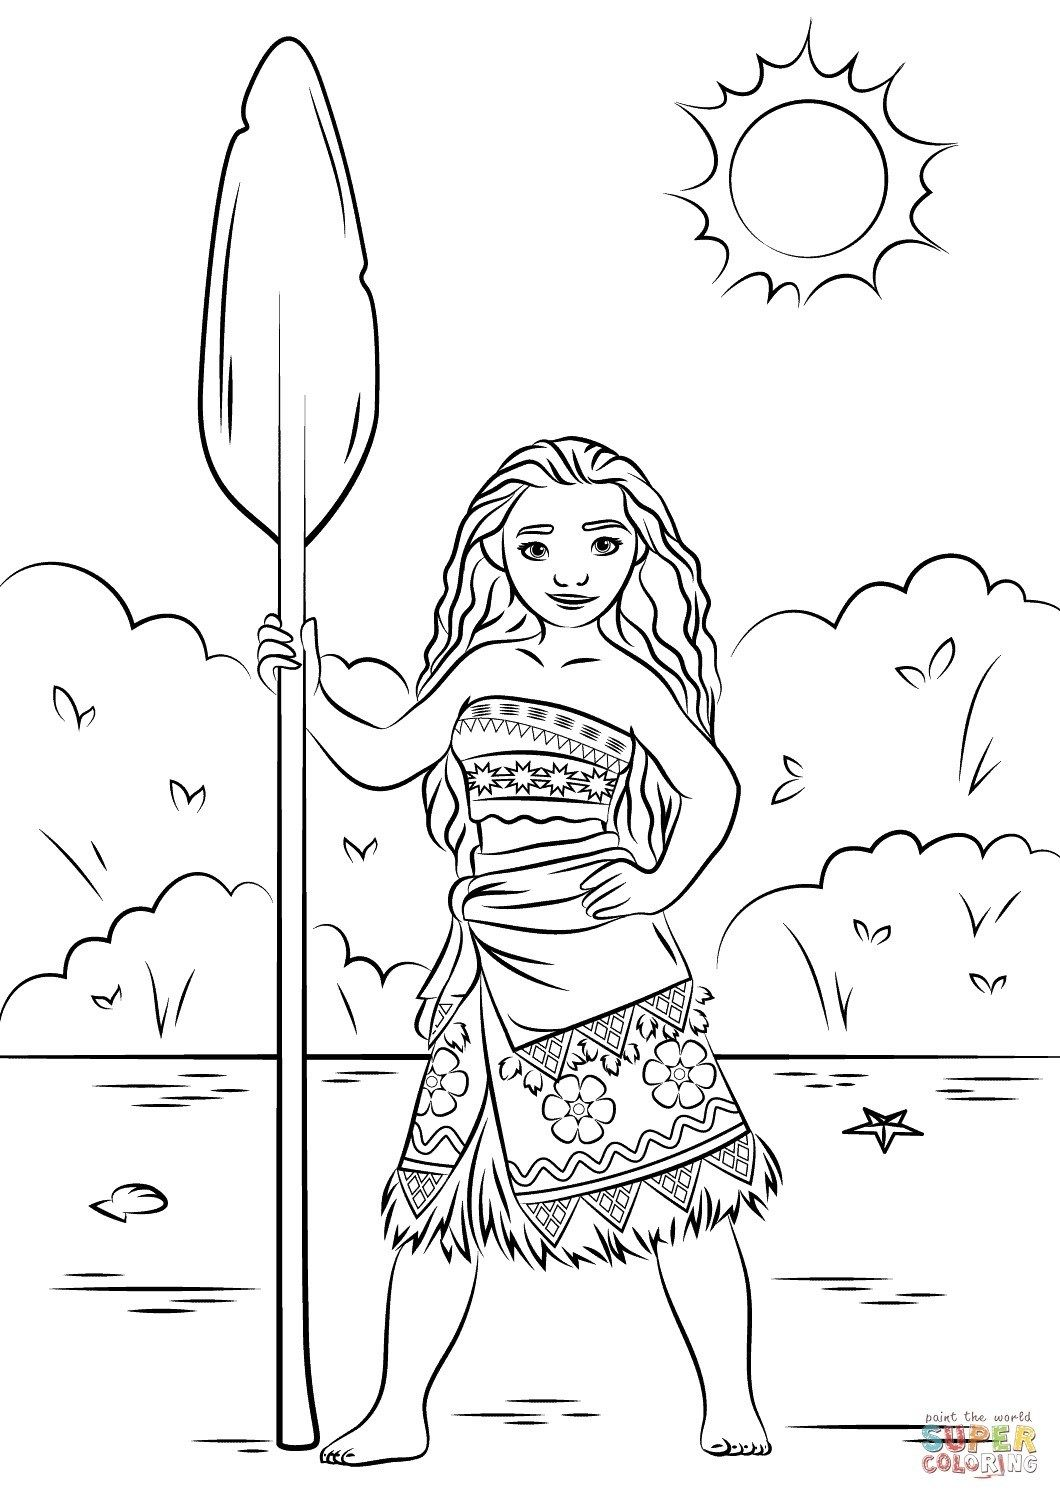 25 Excellent Picture Of Moana Coloring Pages Pdf Davemelillo Com Disney Princess Coloring Pages Moana Coloring Pages Princess Coloring Pages [ 1500 x 1060 Pixel ]